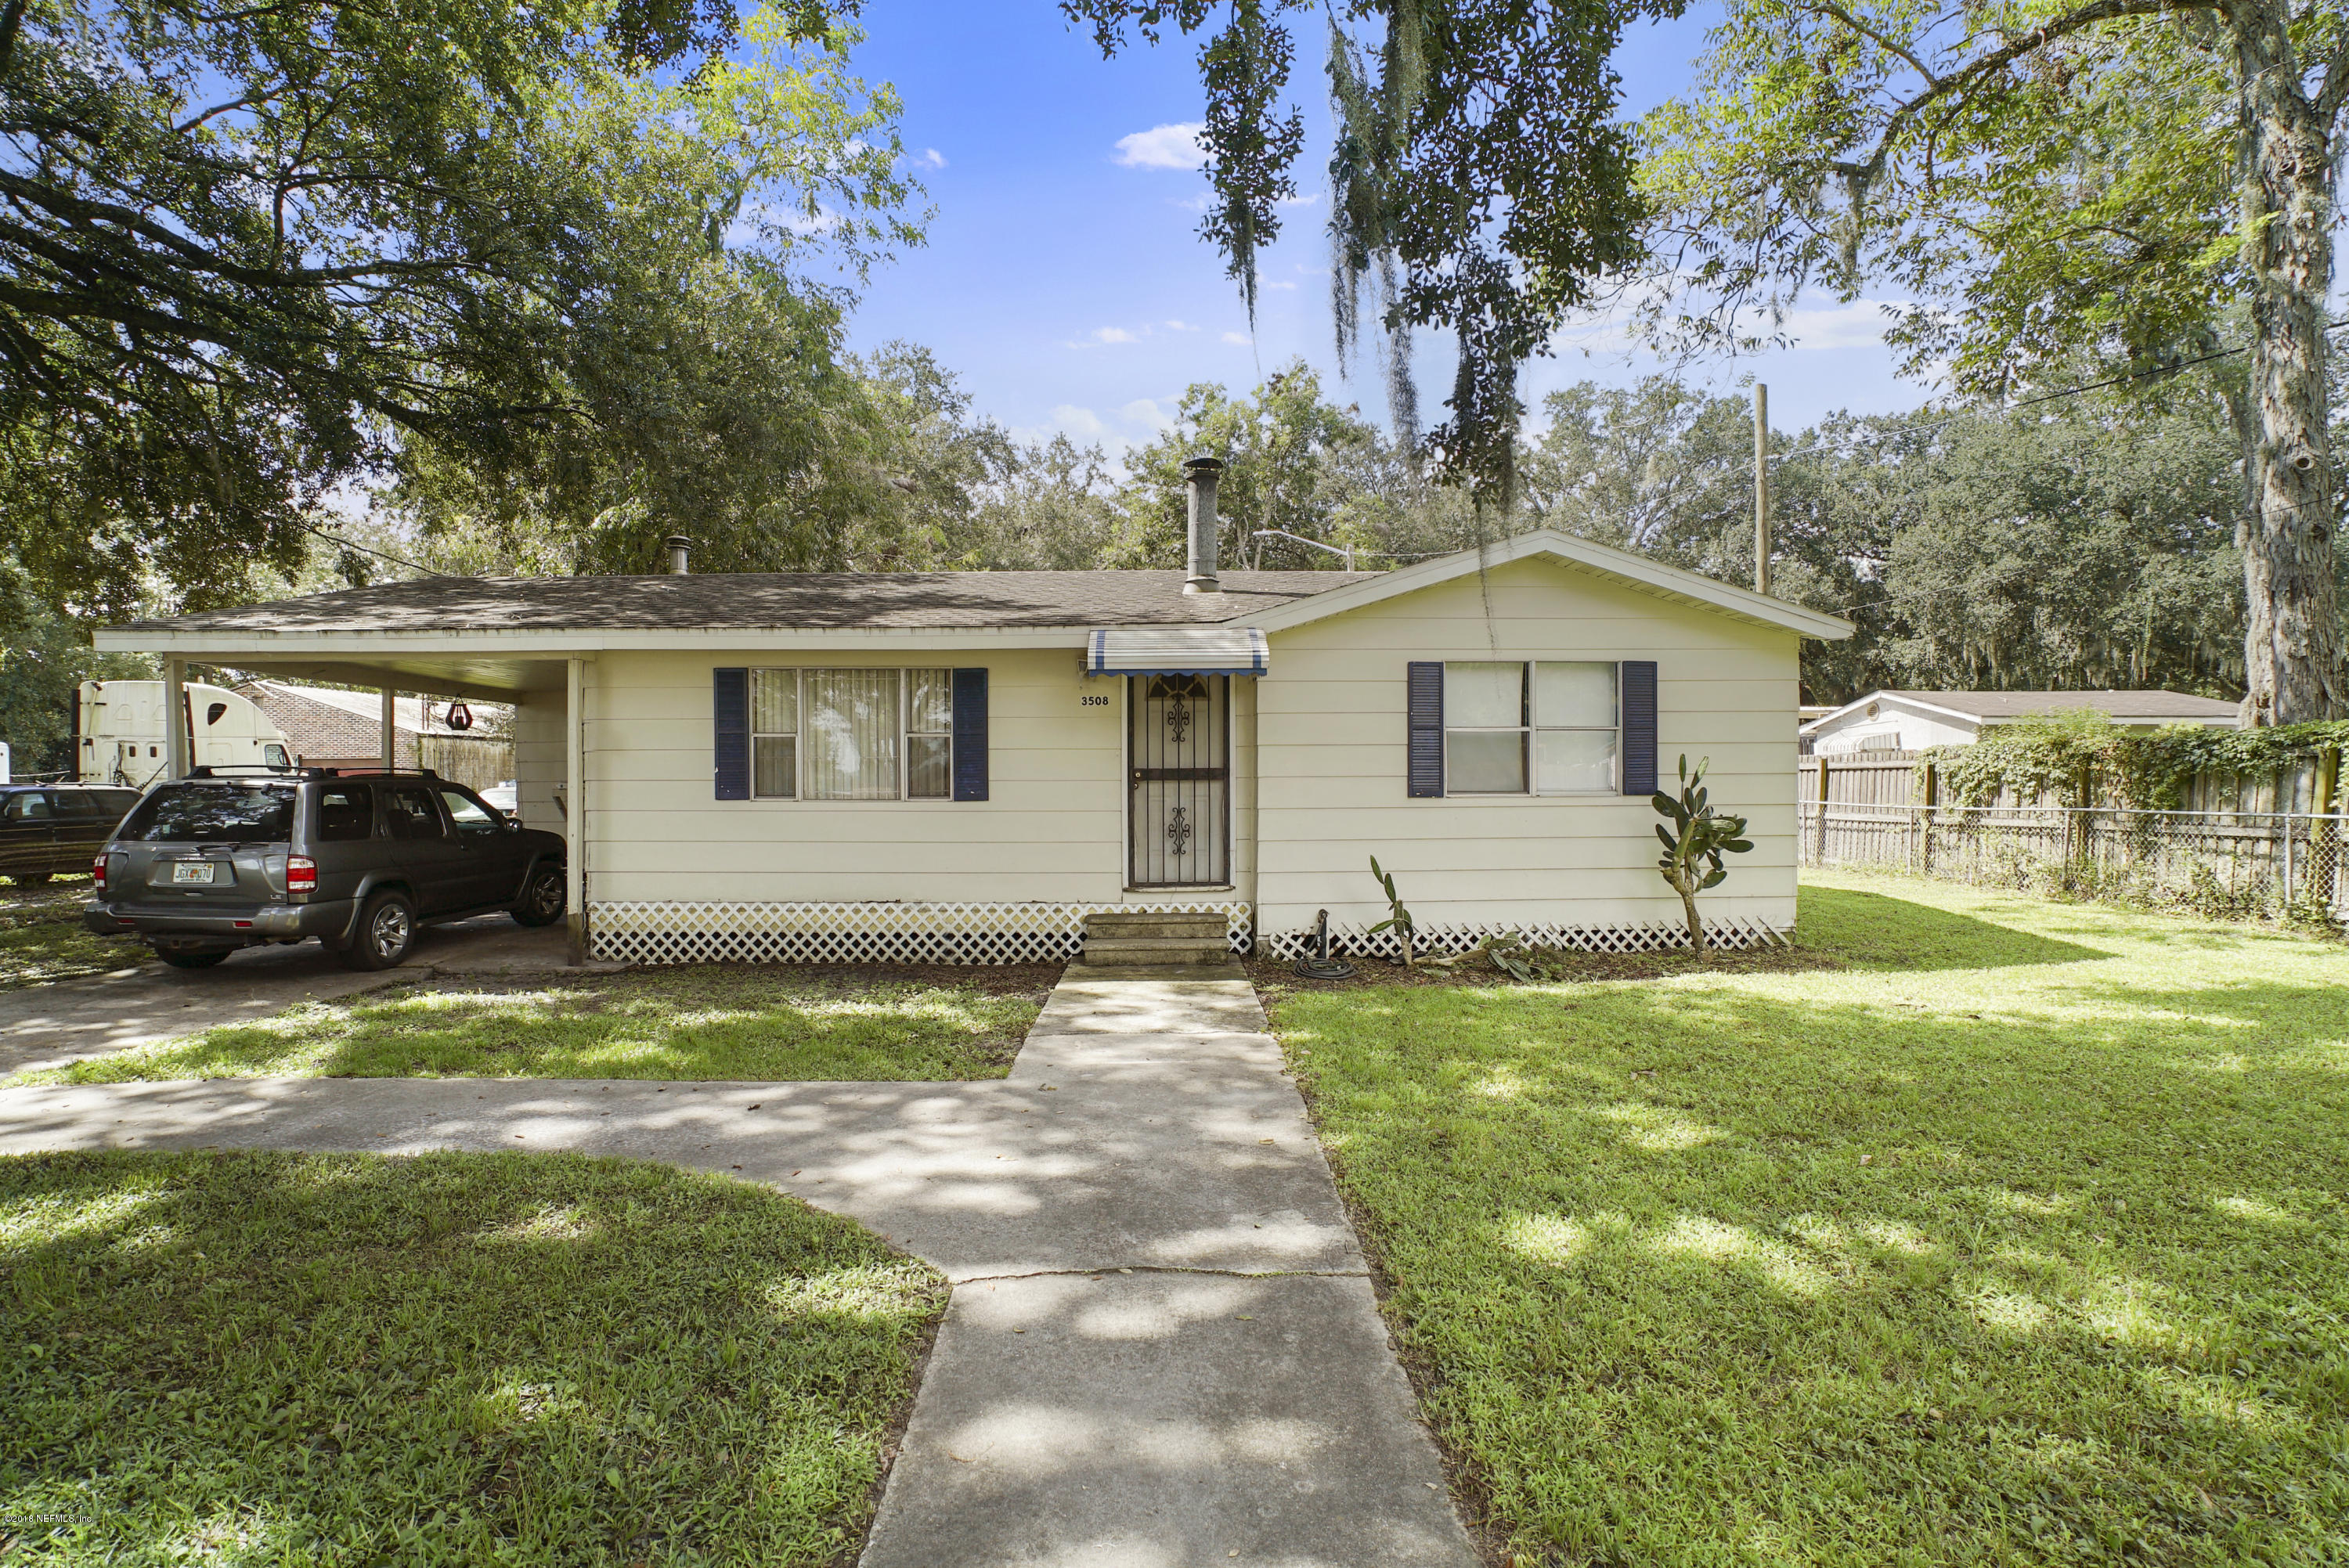 3508 OLD KINGS, JACKSONVILLE, FLORIDA 32209, 3 Bedrooms Bedrooms, ,1 BathroomBathrooms,Residential - single family,For sale,OLD KINGS,957409